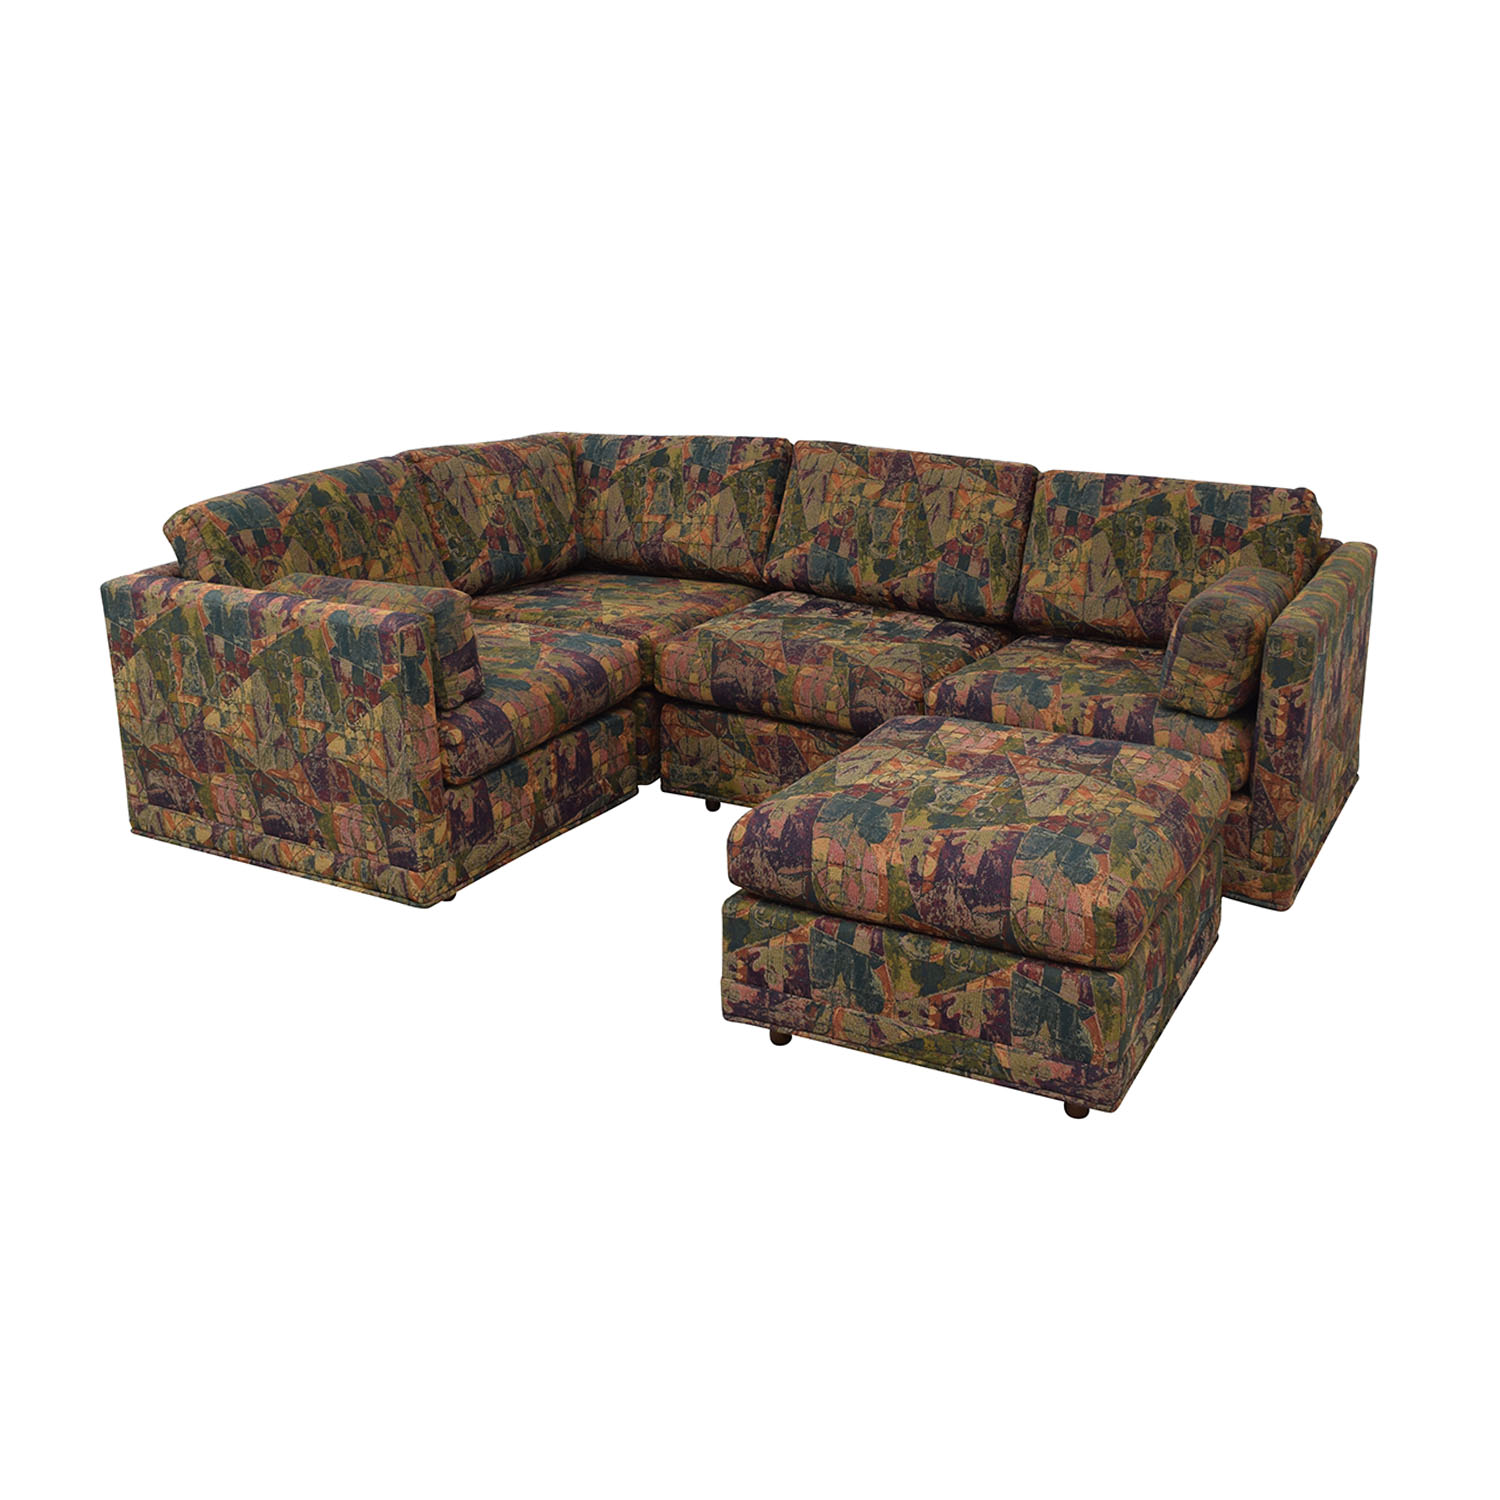 Multi-Colored Sectional With Ottoman price